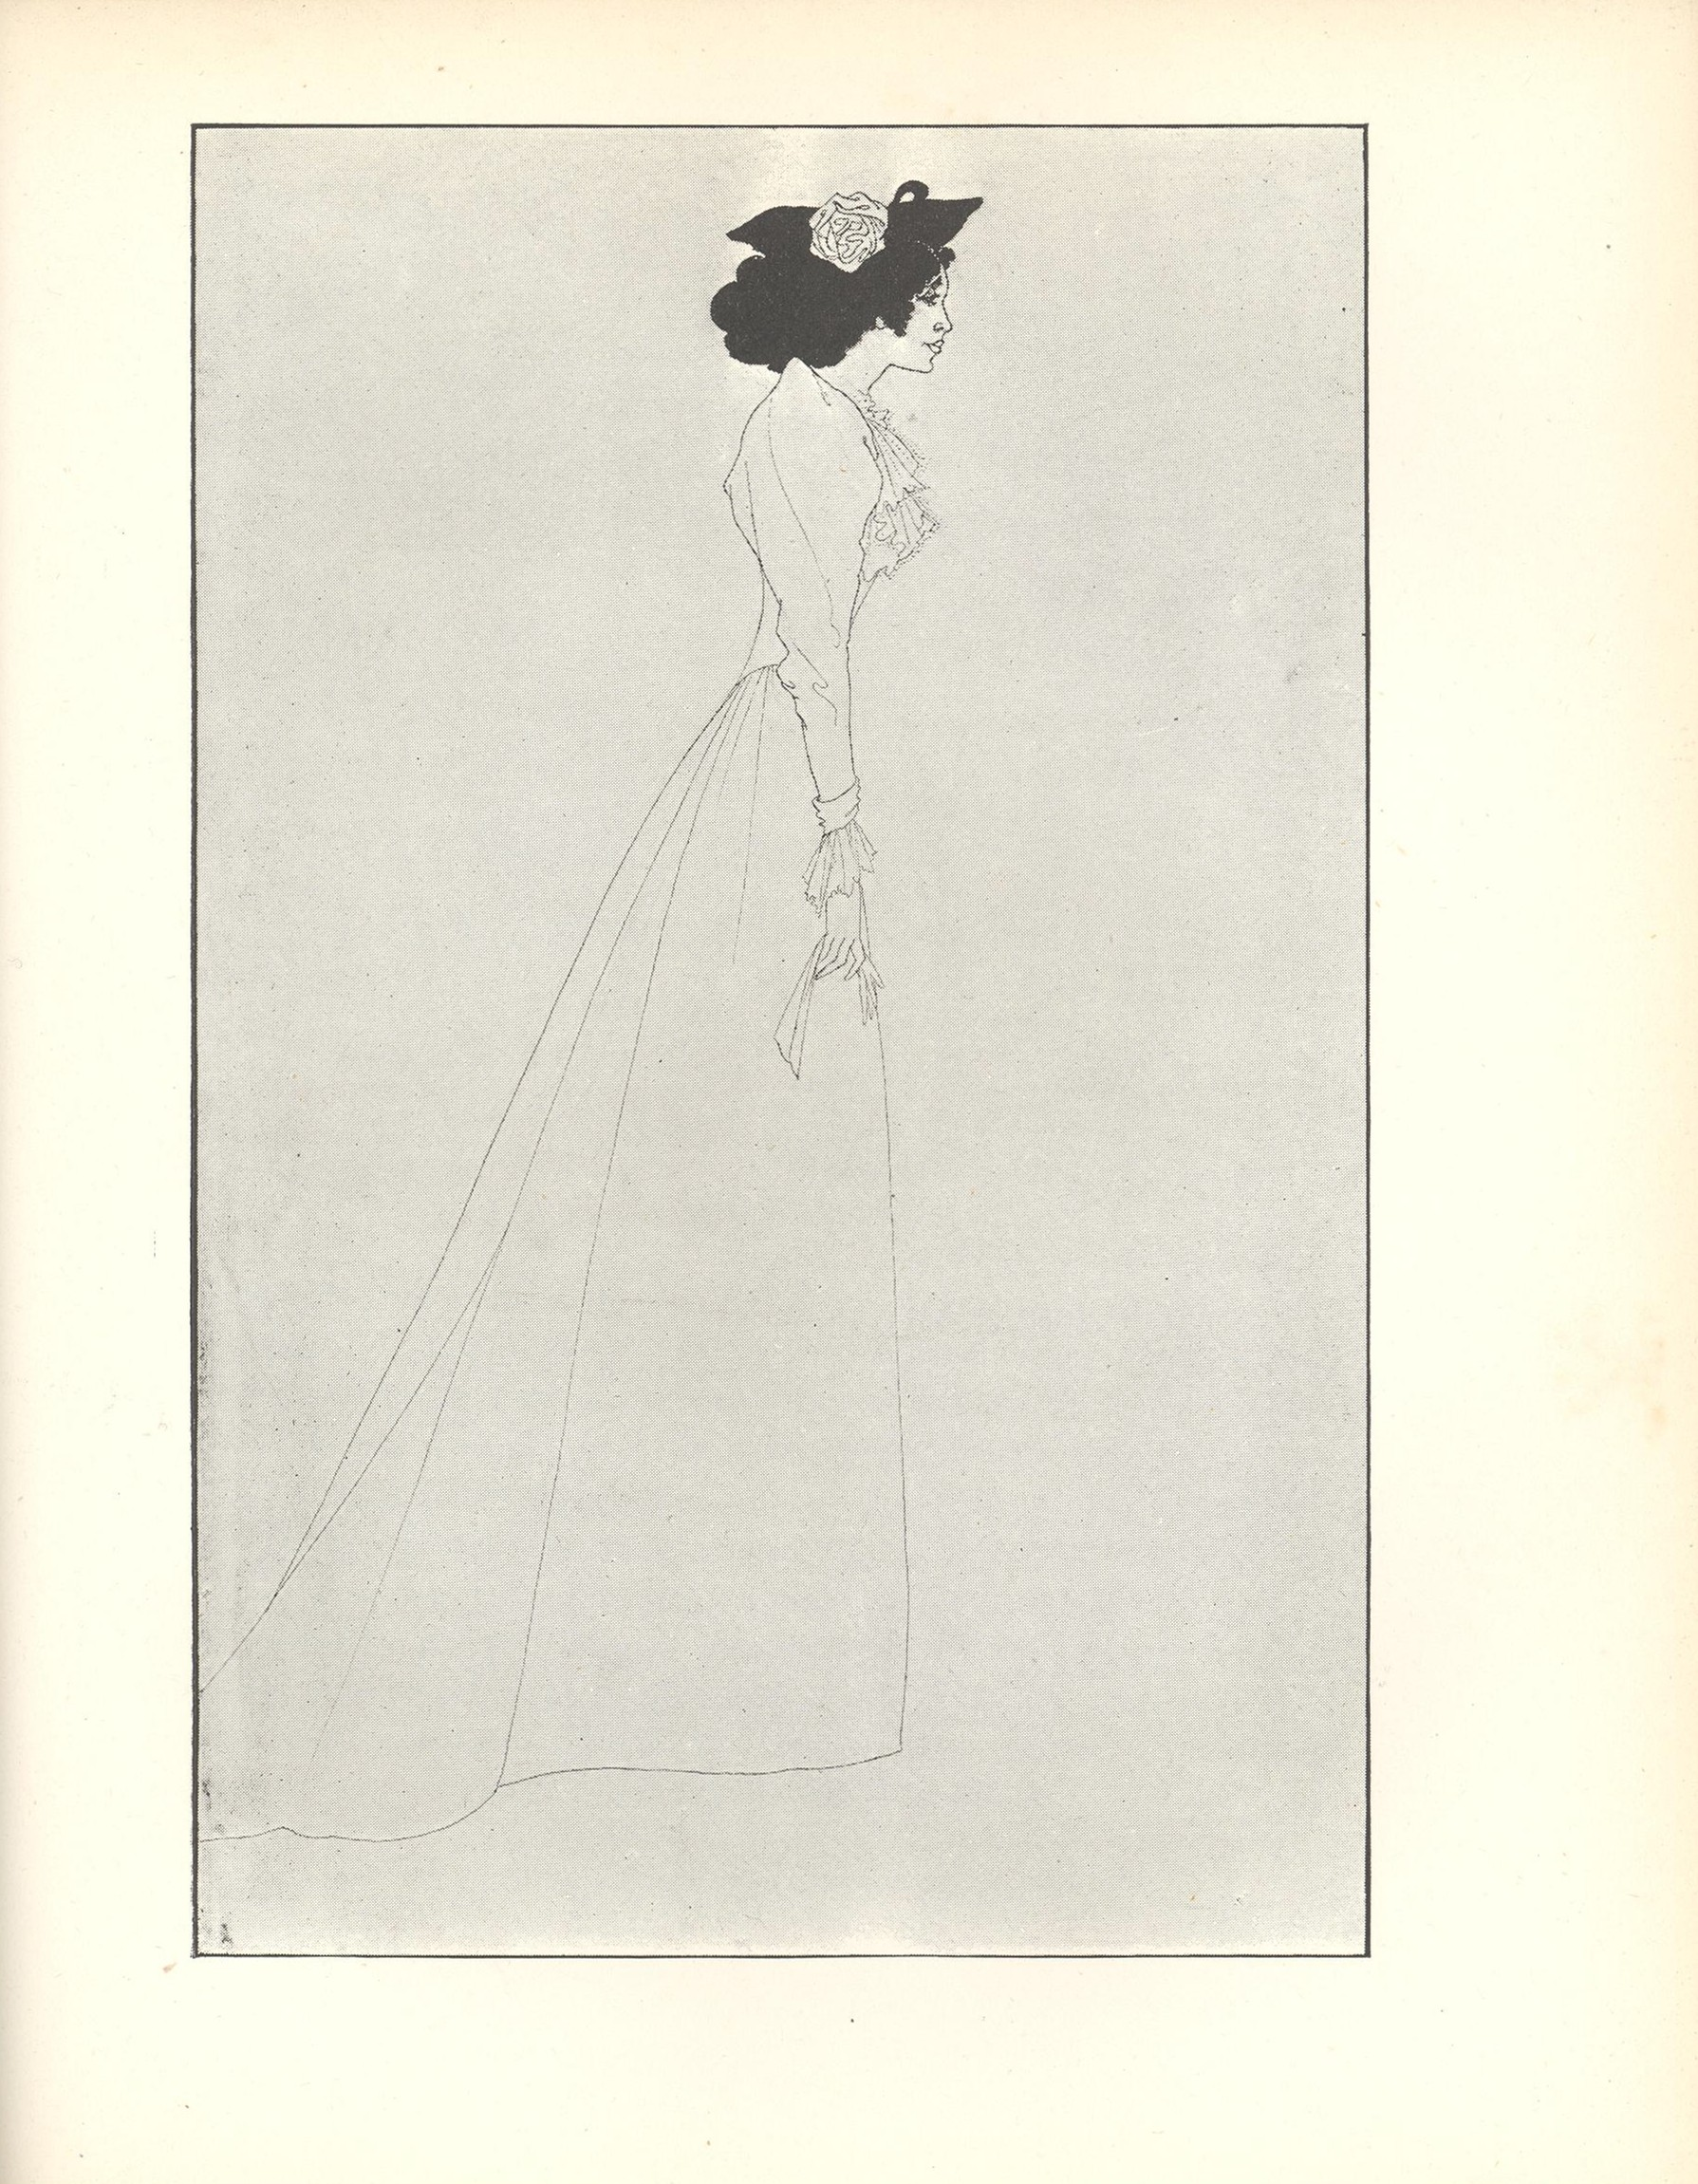 Image is of a full length woman standing in profile looking right Except for her black hair and hat her form is suggested with the lightest of lines Her body extends from nearly the top of the frame to the bottom dividing the space in half vertically She is wearing a small black hat with a large white rose a white dress with a lace jabot and puffed sleeves with lace cuffs She is carrying a white glove in her right hand The background is open and light coloured The image is vertically displayed